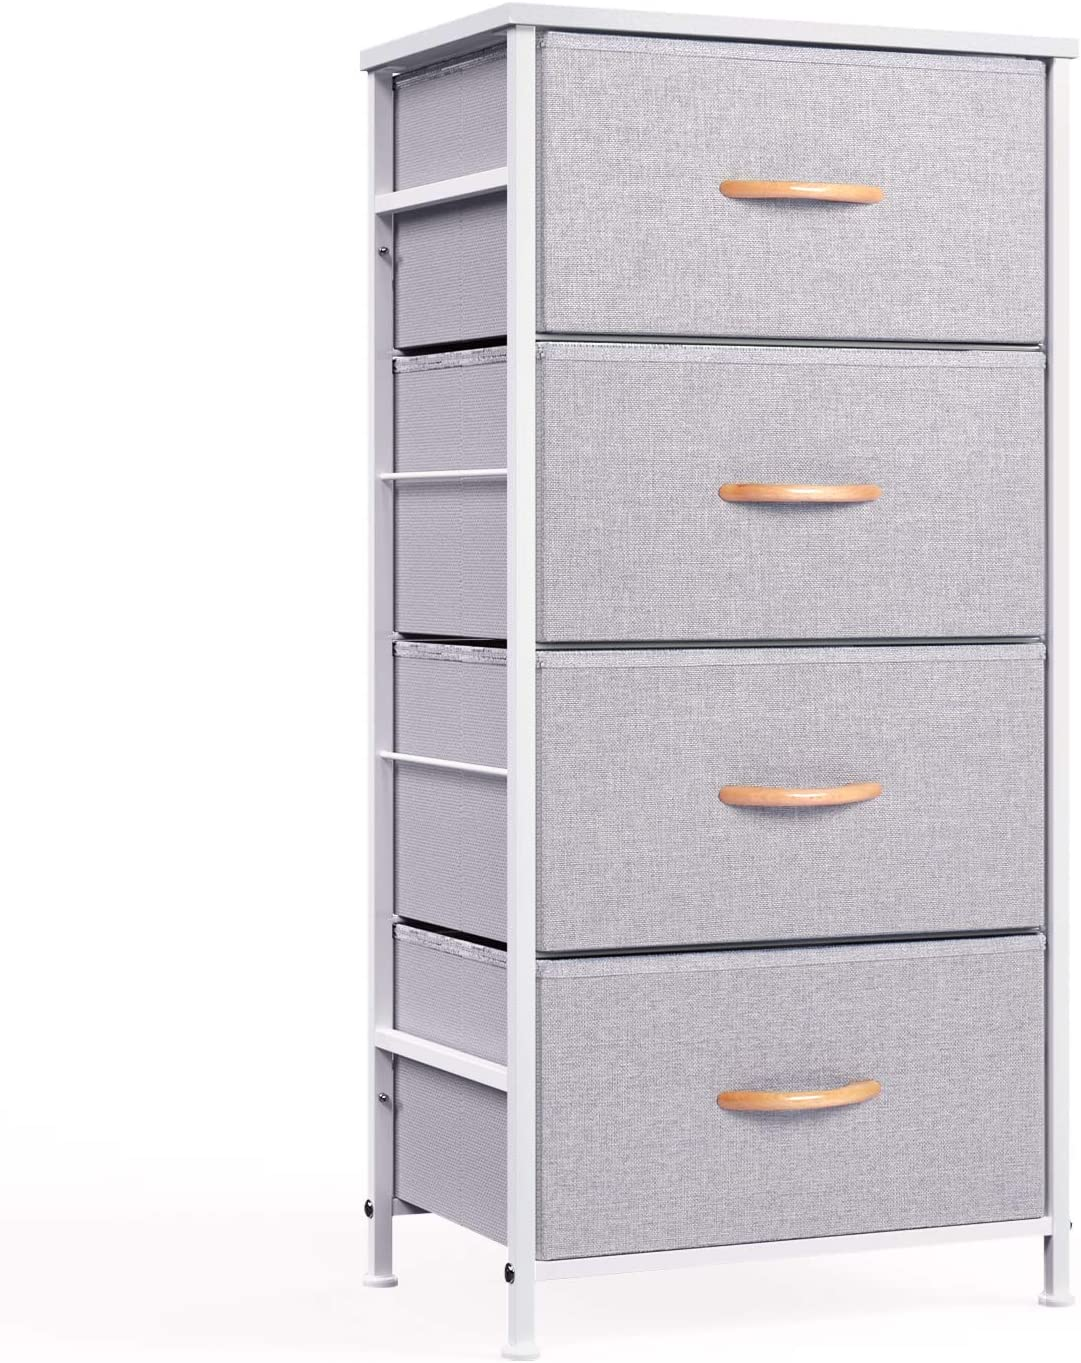 ROMOON 4 Drawer Fabric Dresser Storage Tower, Organizer Unit for Bedroom, Closet, Entryway, Hallway, Nursery Room - Gray: Home & Kitchen